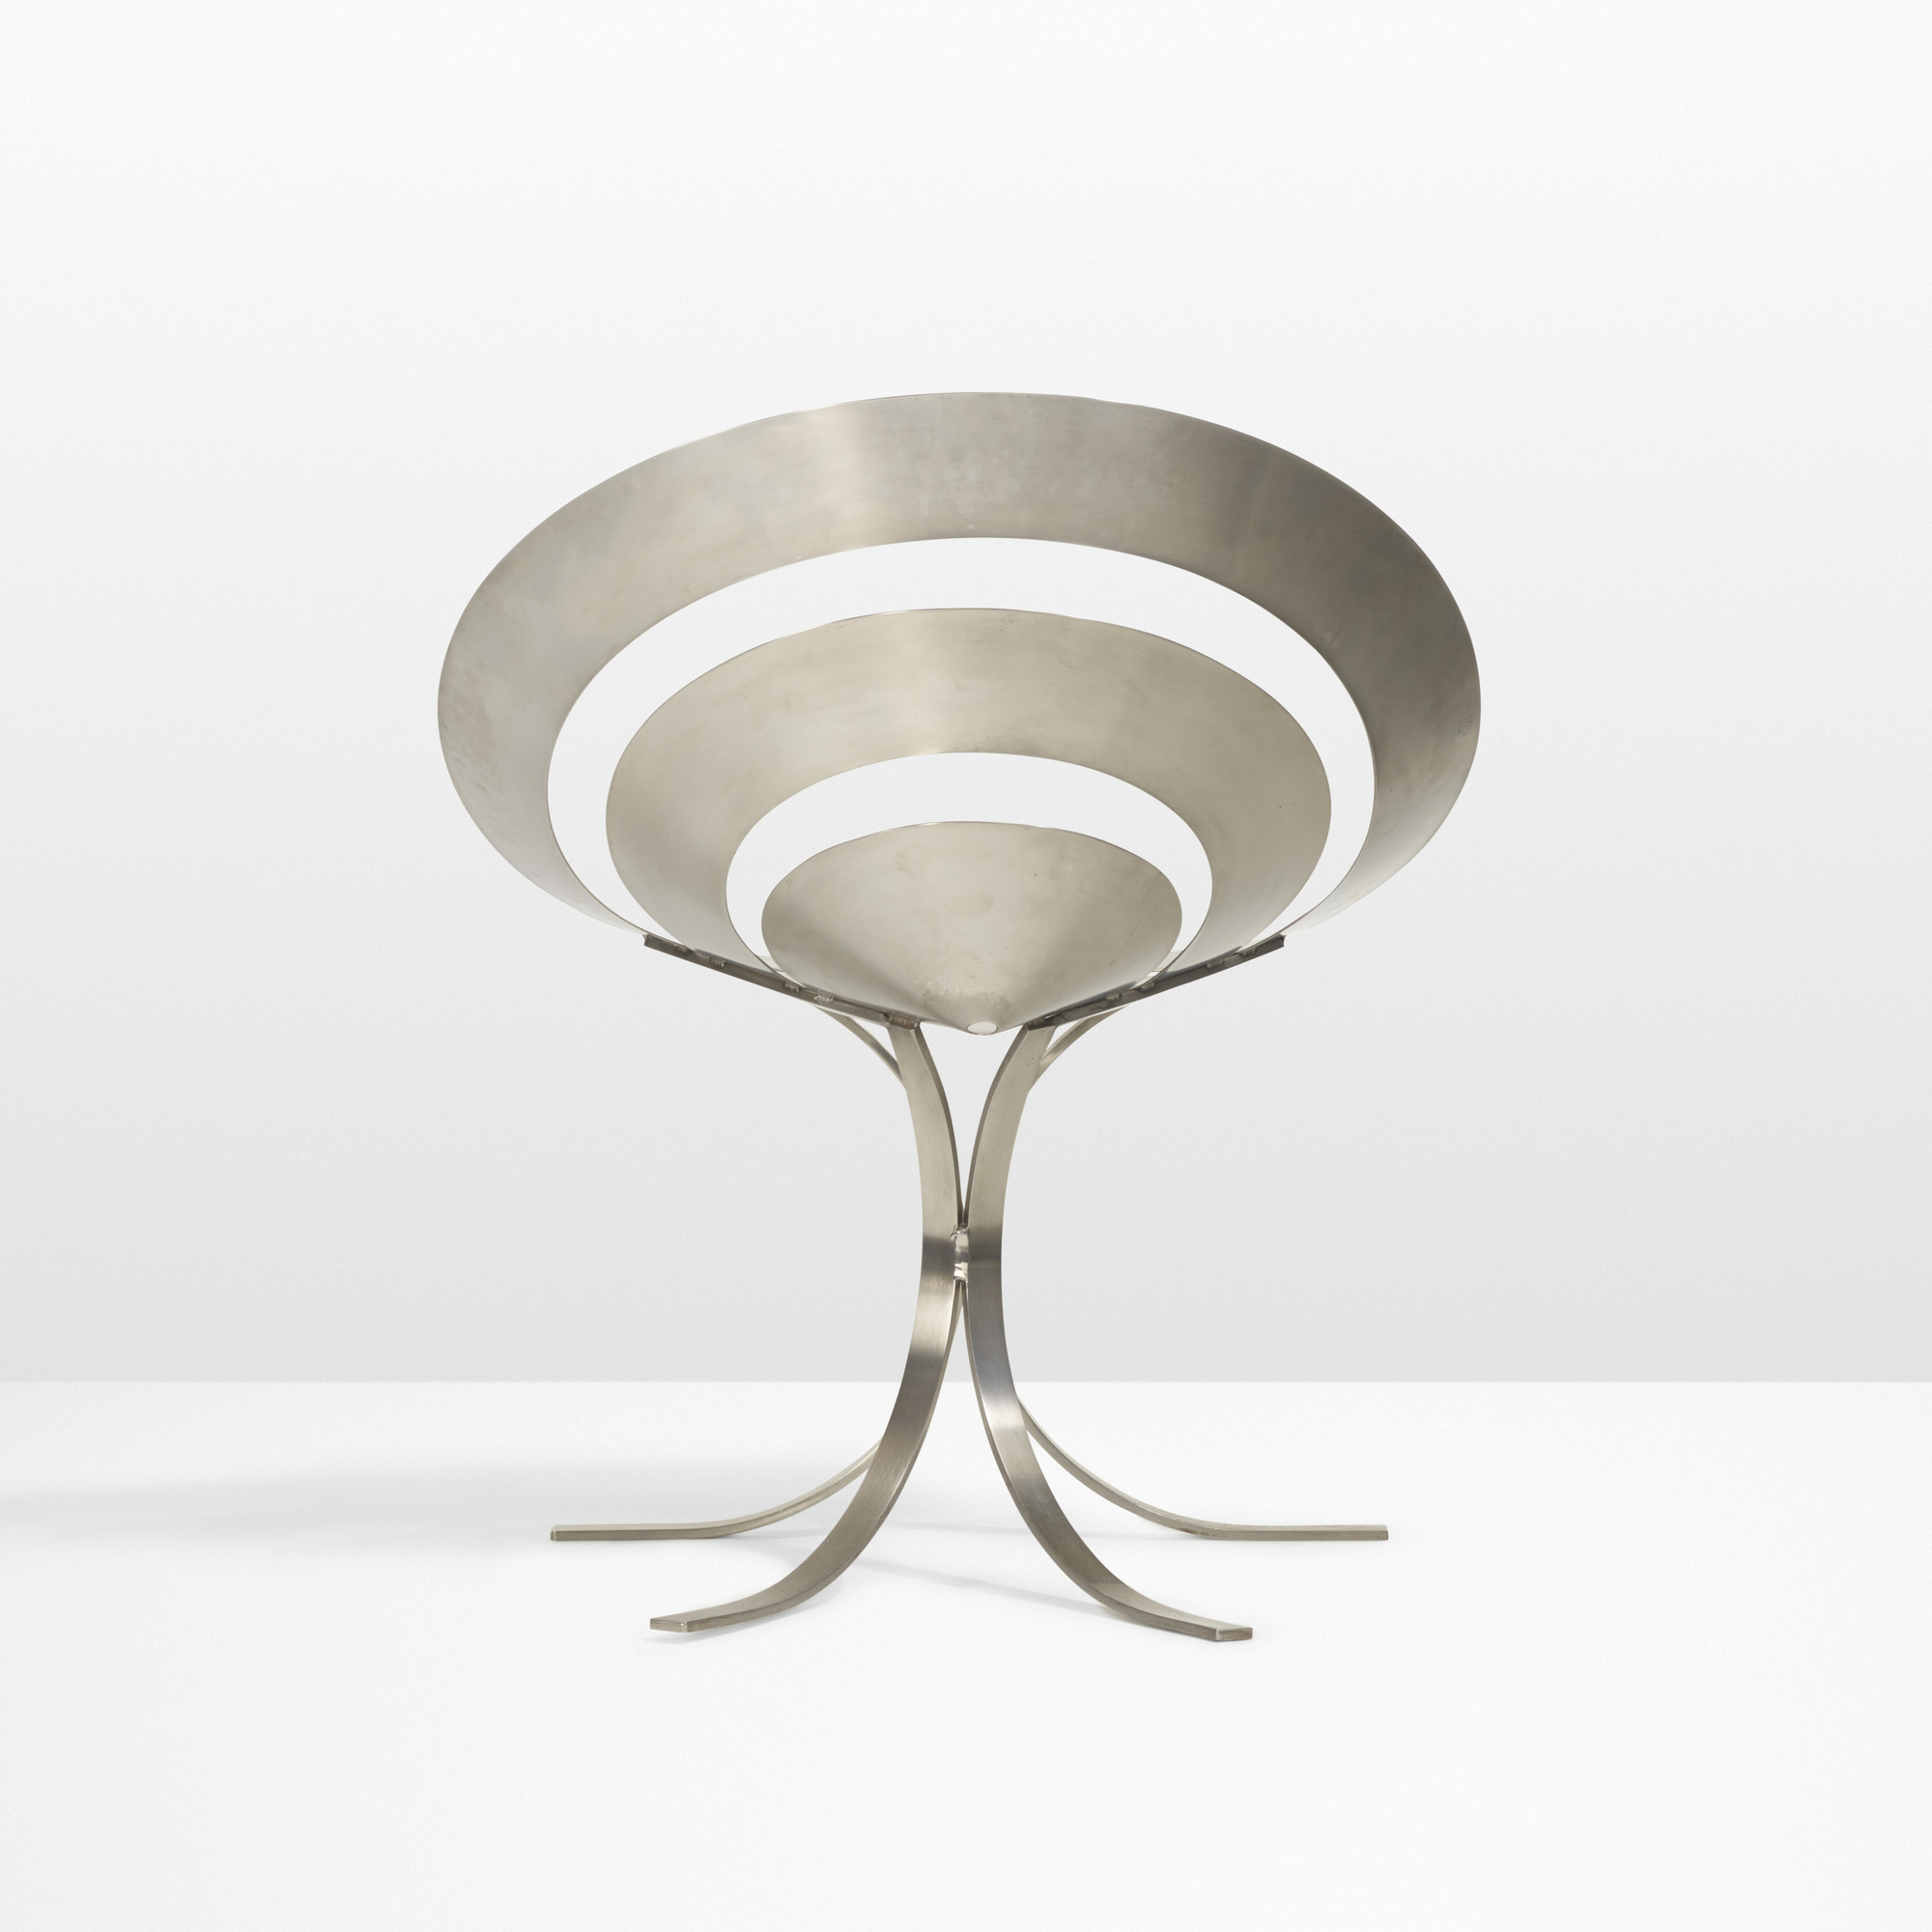 8: Maria Pergay / Important pair of Ring chairs (3 of 4)